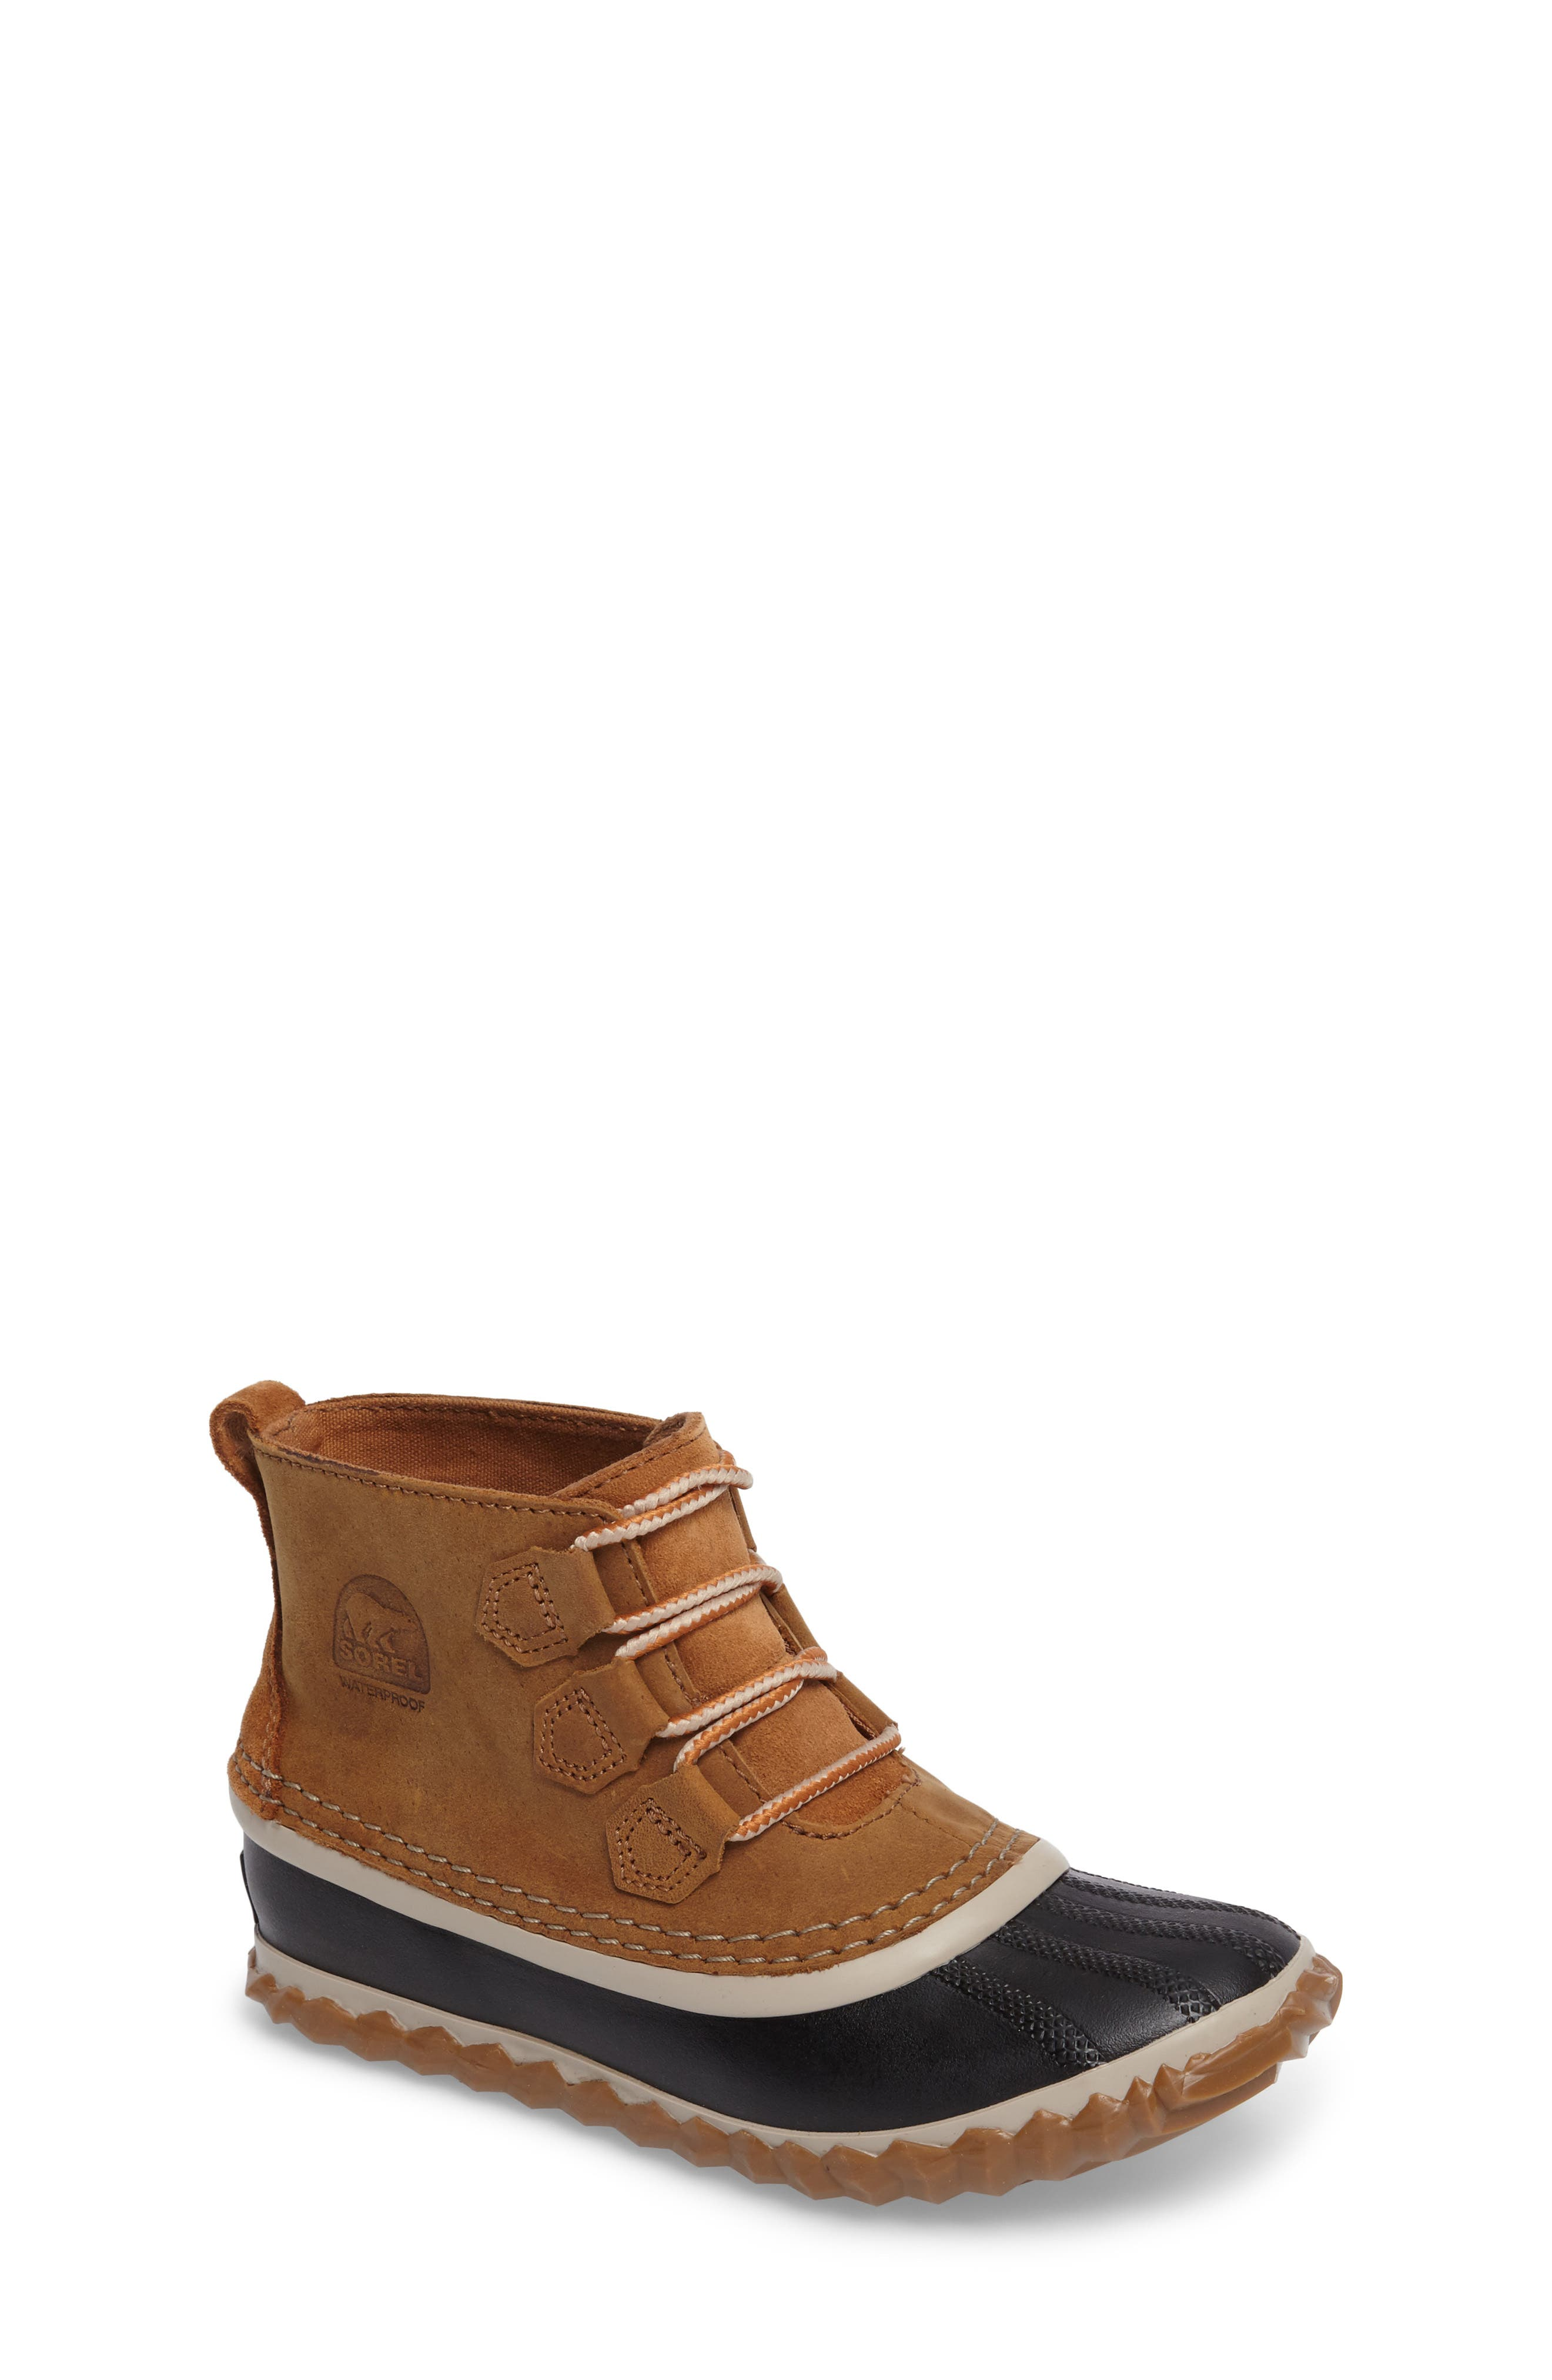 Out 'N About<sup>®</sup> Waterproof Boot,                         Main,                         color, 200